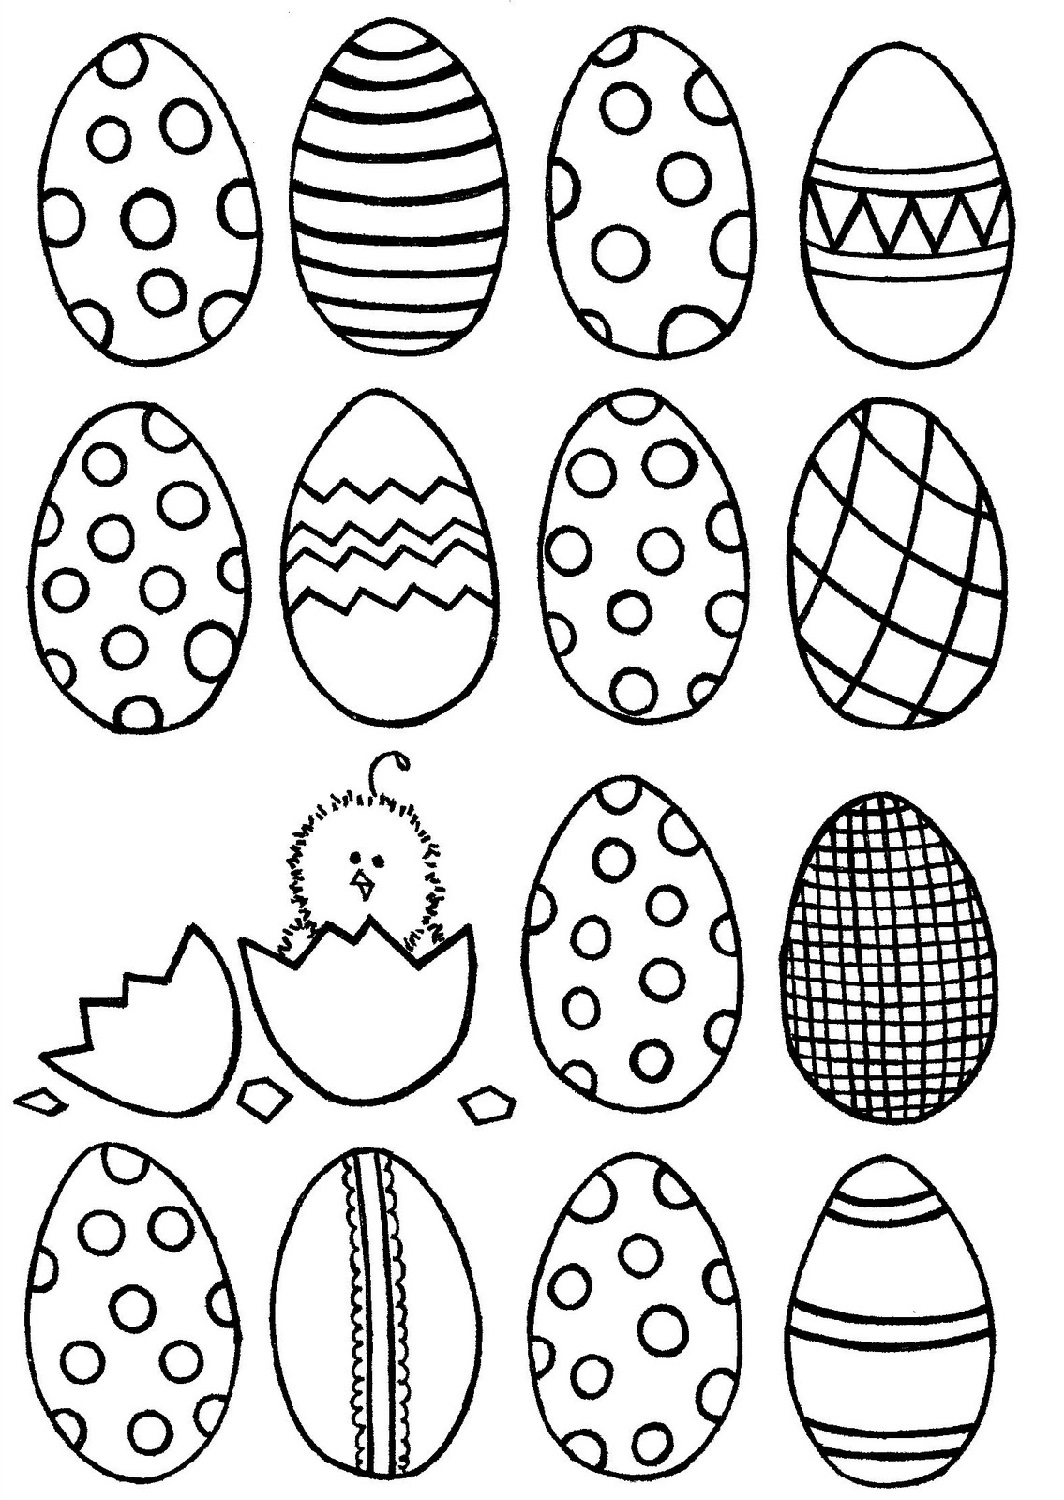 easter egg template easter egg templates for fun easter crafts skip to my lou egg template easter